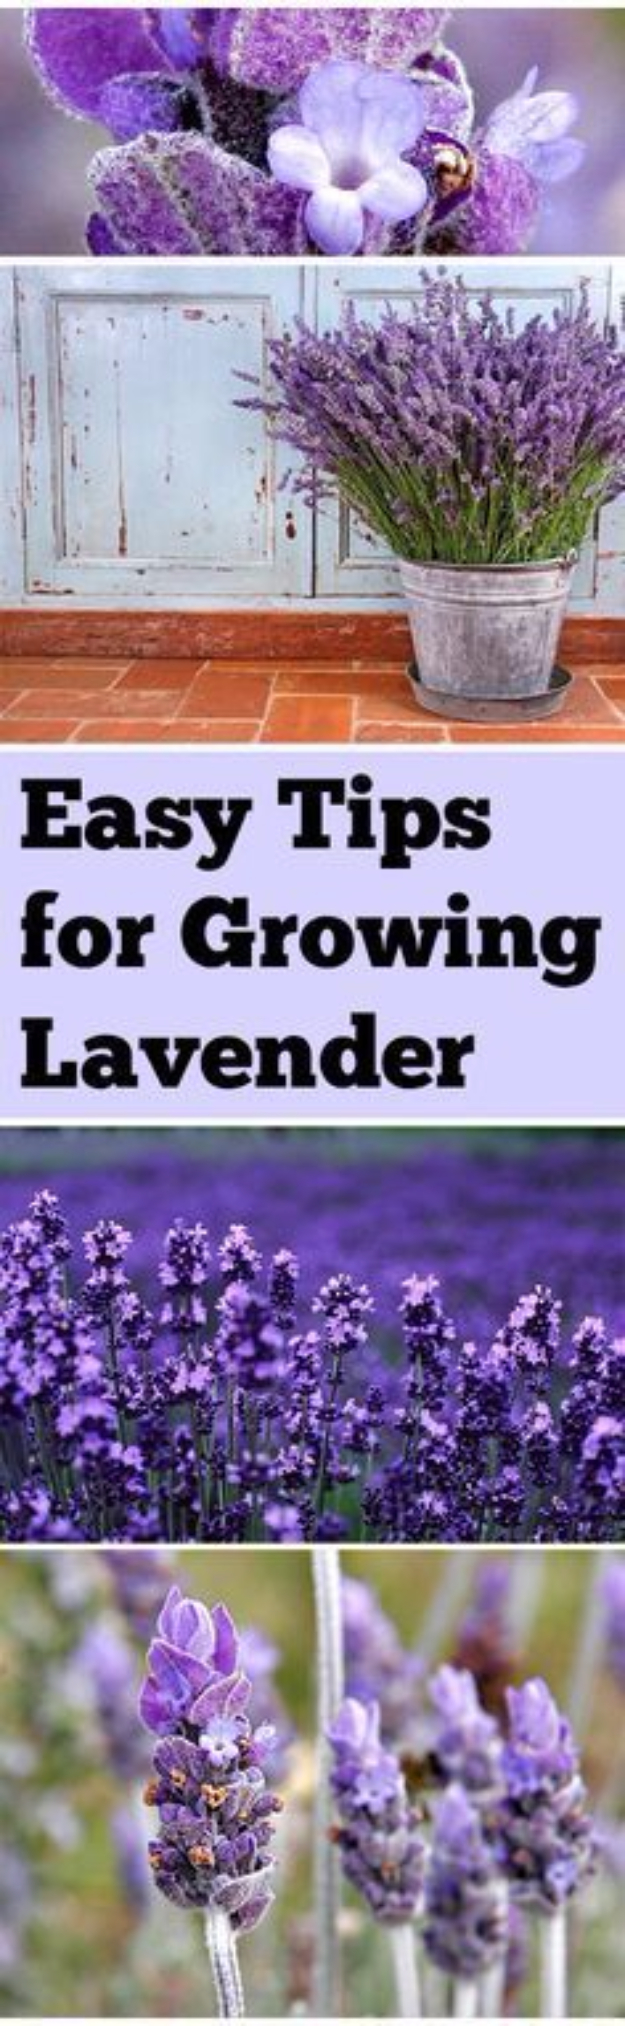 31 awesome diy tips for spring gardening diy joy - Growing lavender pot ...